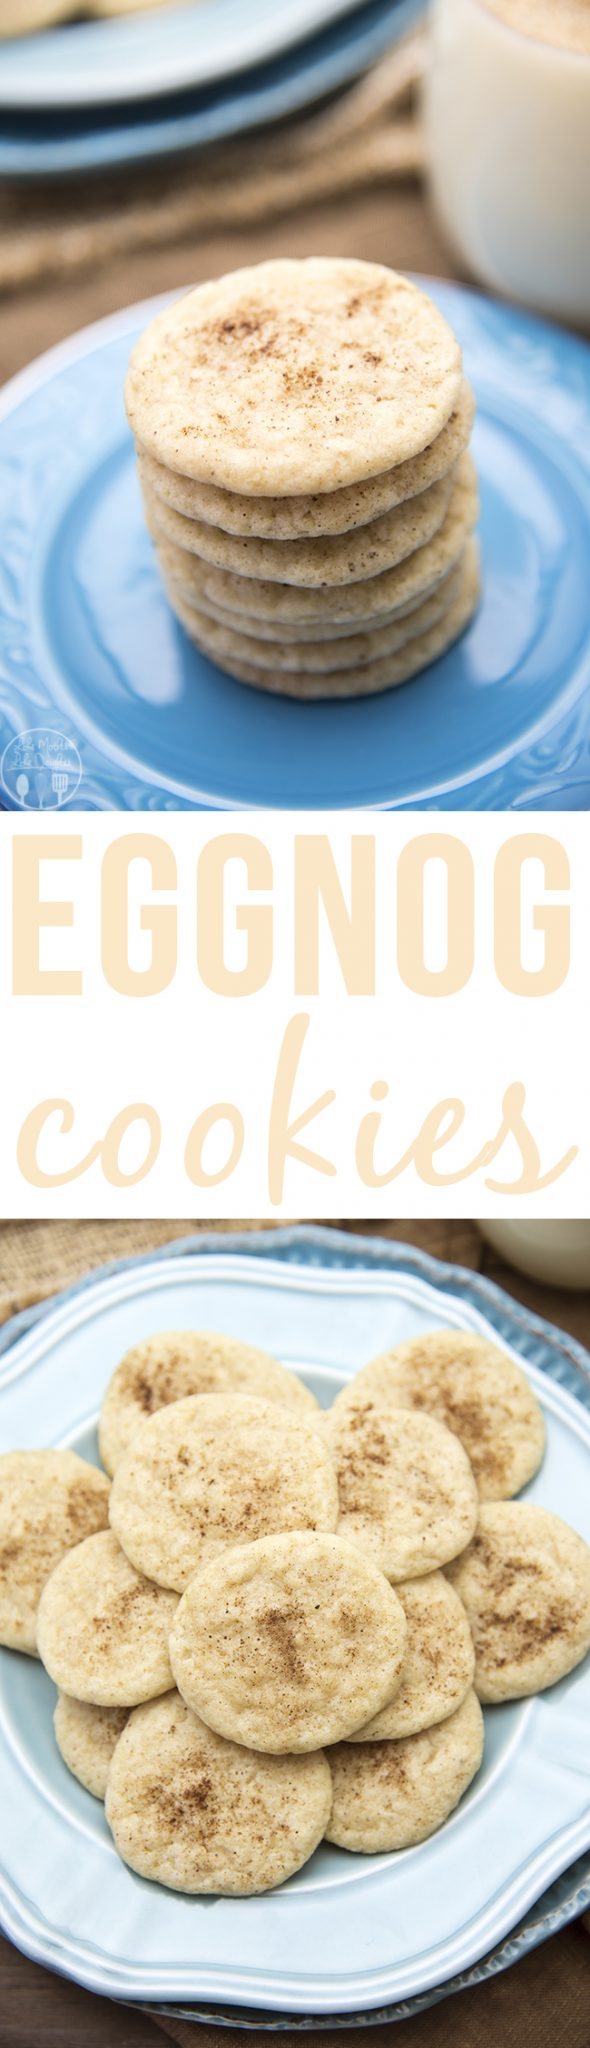 Eggnog cookies have the great taste of eggnog in a cookie! With eggnog, cinnamon and nutmeg these are a delicious seasonal cookie!